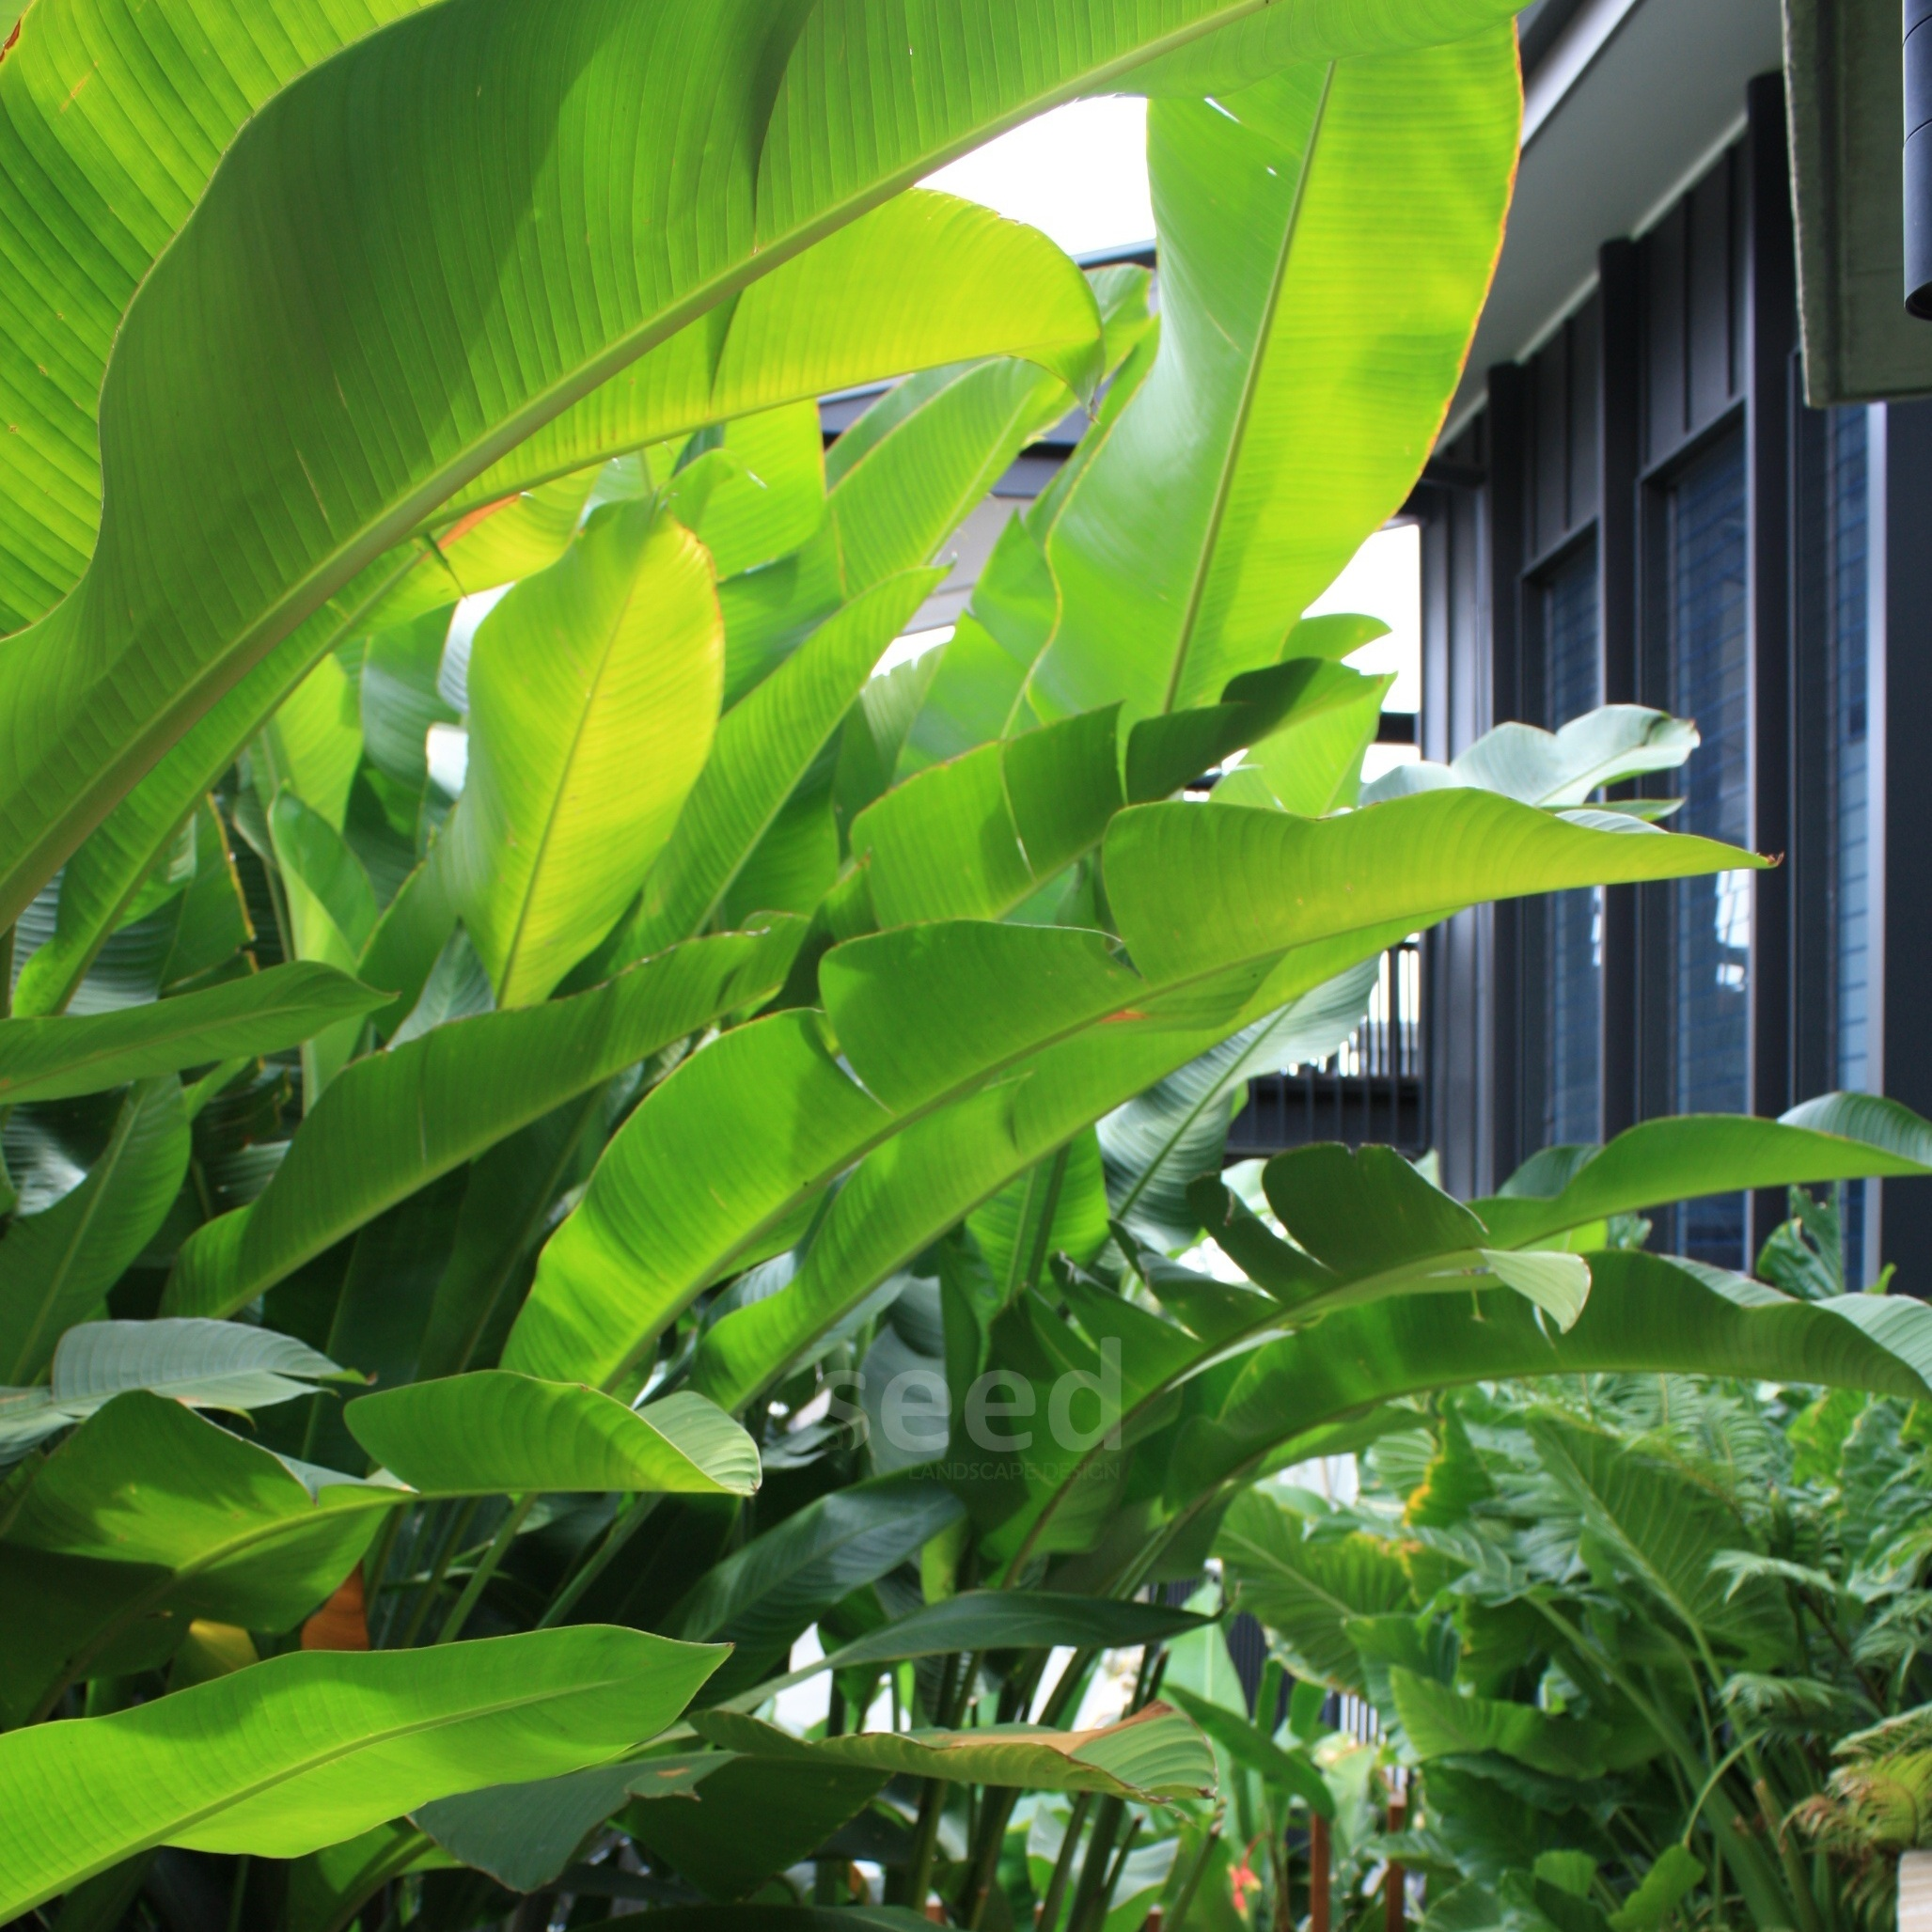 Tall clusters of broad leaf plants create privacy from the neighbours in high density living while also keeping the property cool in the summer heat